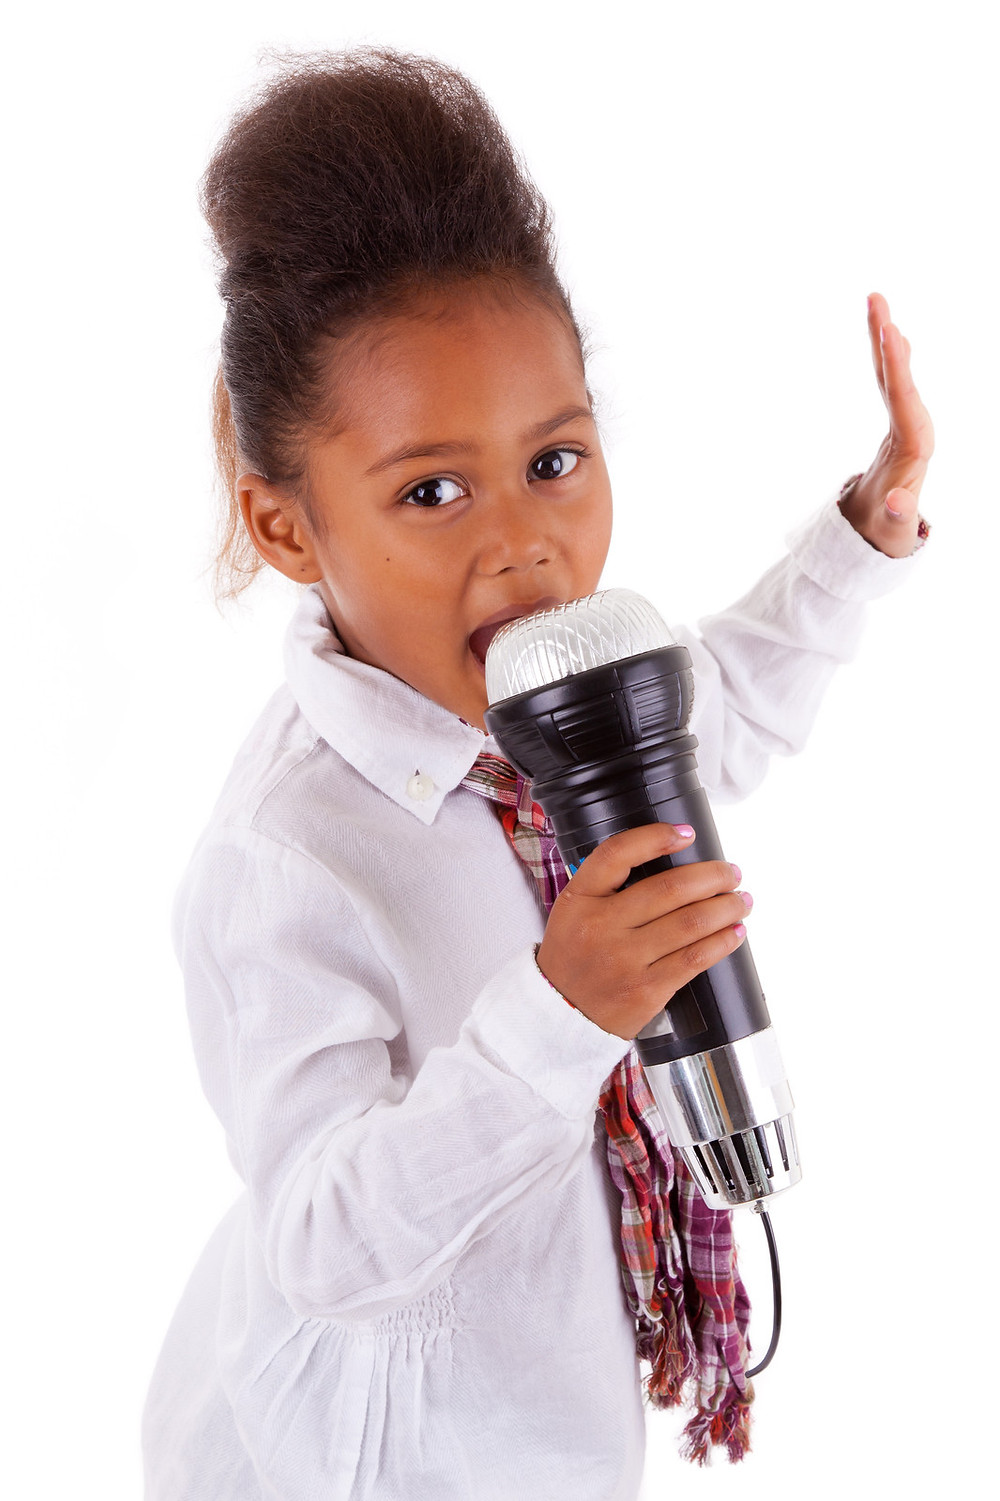 Photo of a young African-American girl singing demonstratively with a giant toy microphone.